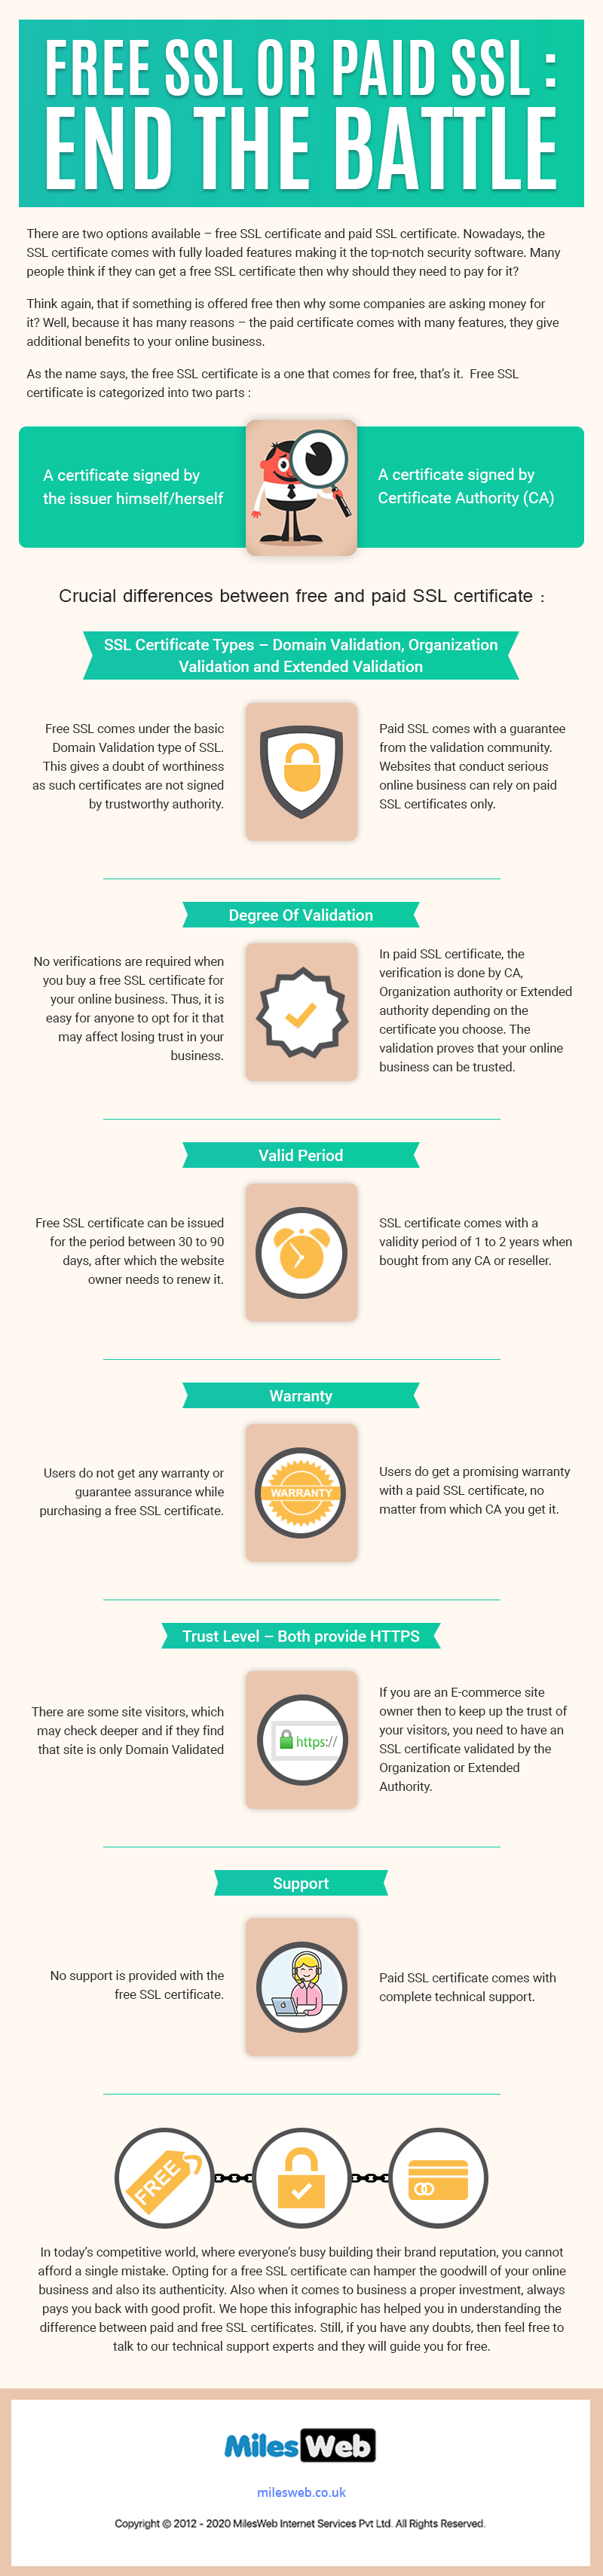 Free or Paid SSL certificate Infographic